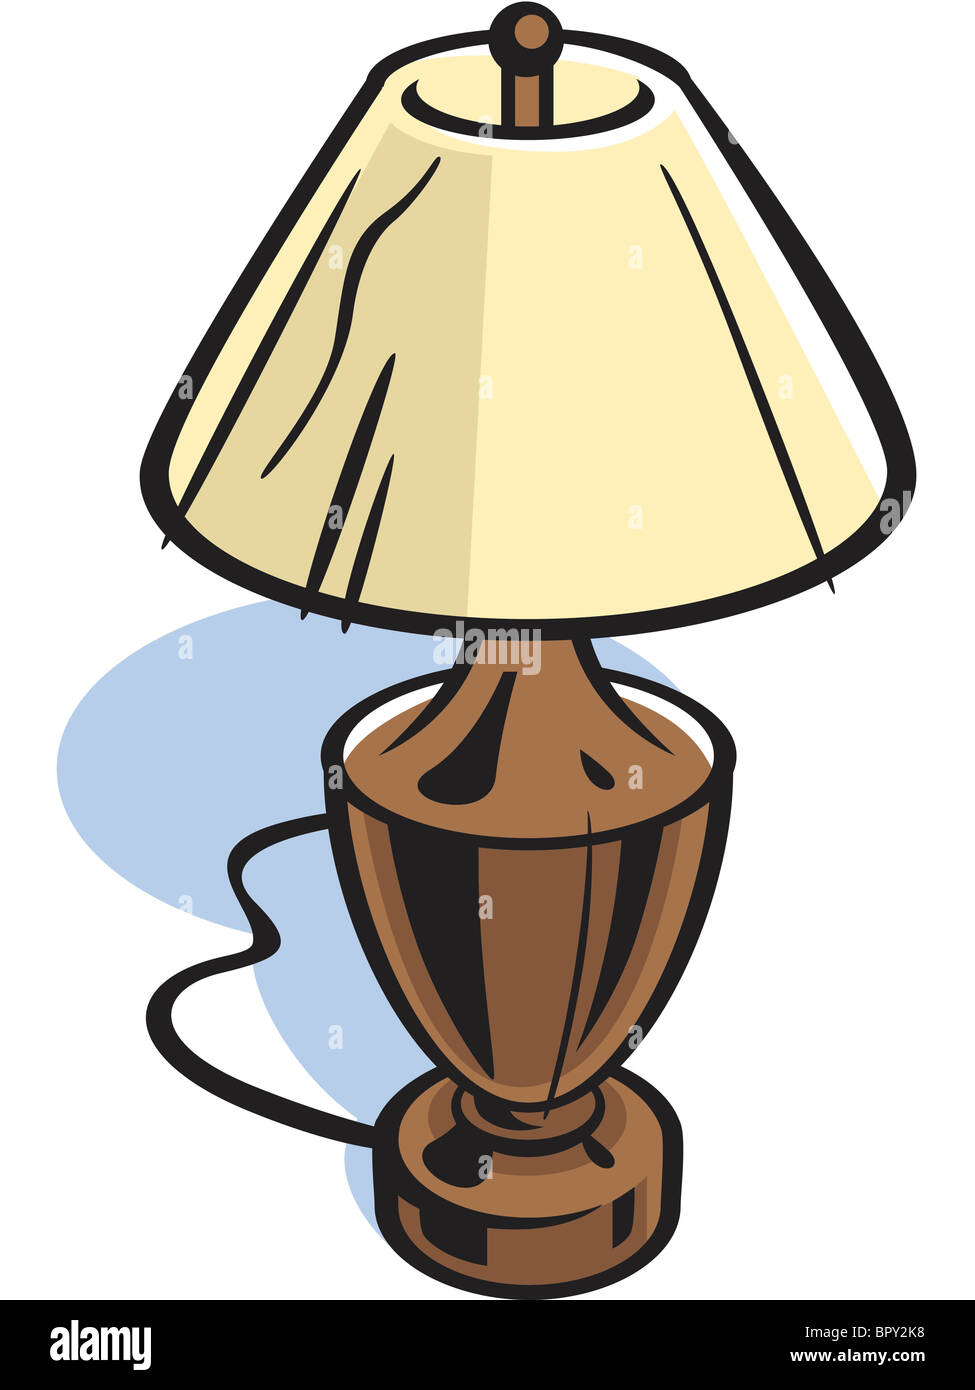 Drawing of a table lamp stock photo 31327612 alamy drawing of a table lamp aloadofball Choice Image